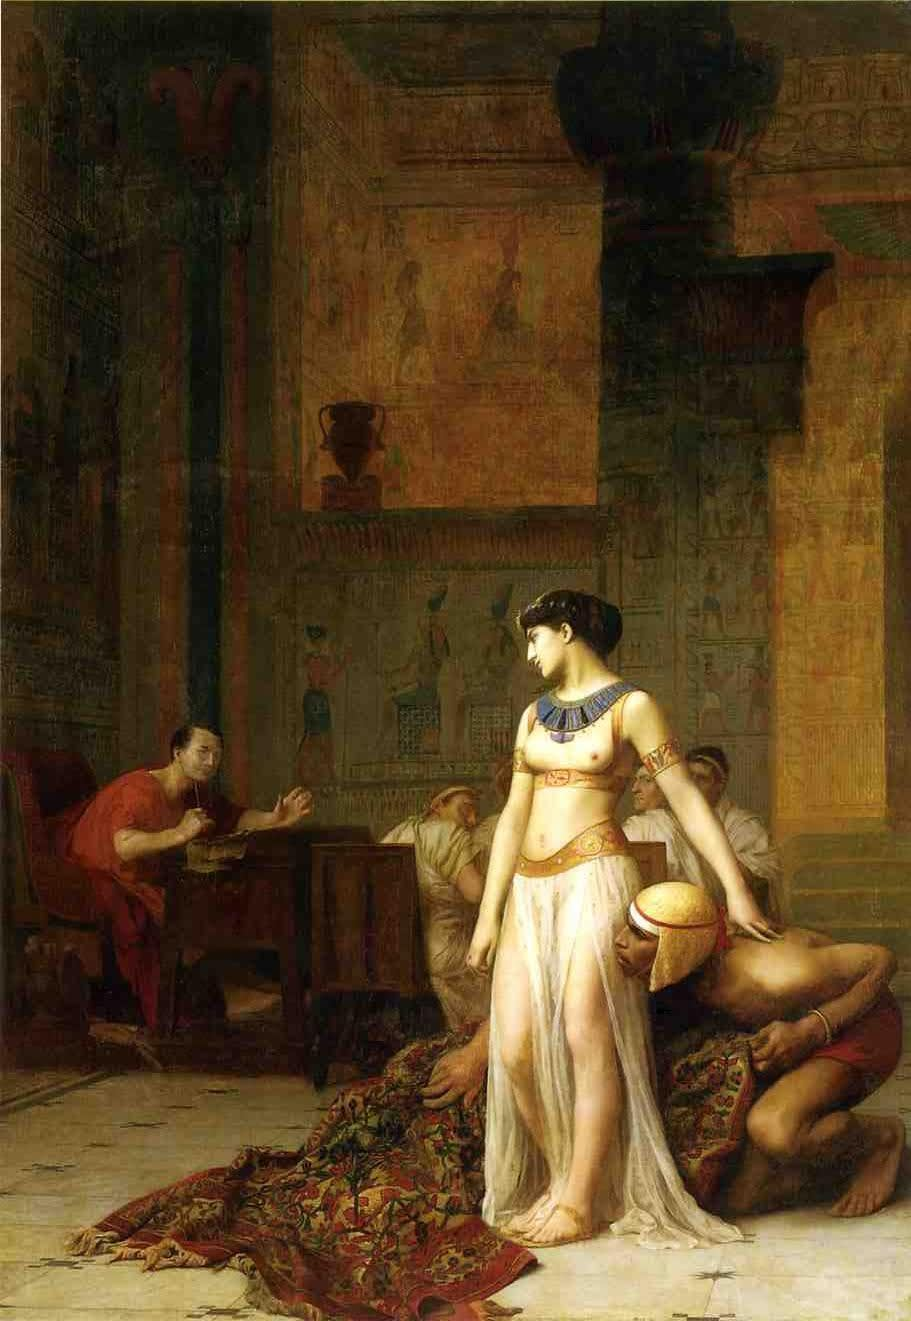 Jean-Leon-Gerome, Cleopatra and Caesar, 1866